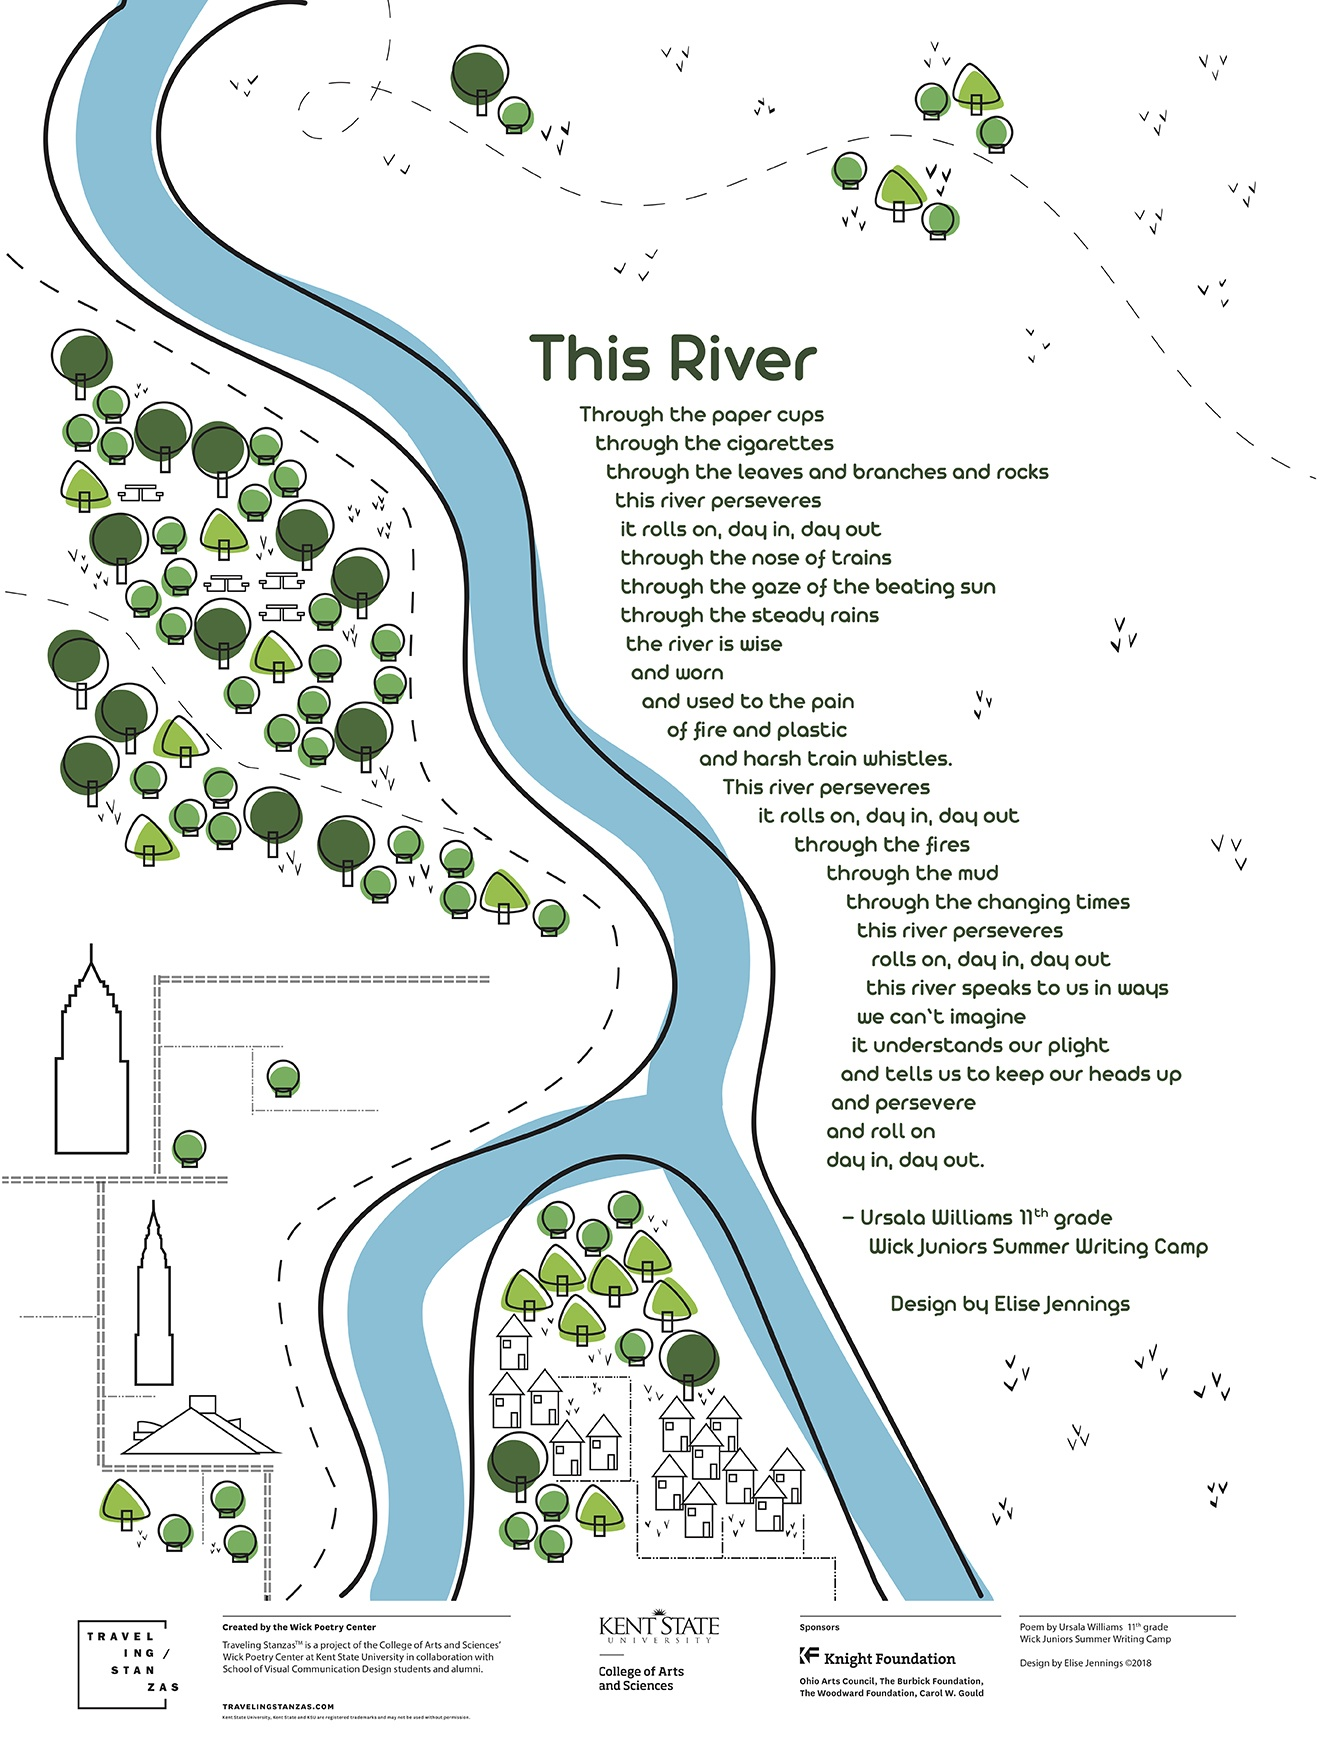 This river_18x24_Jennings_nobleeds